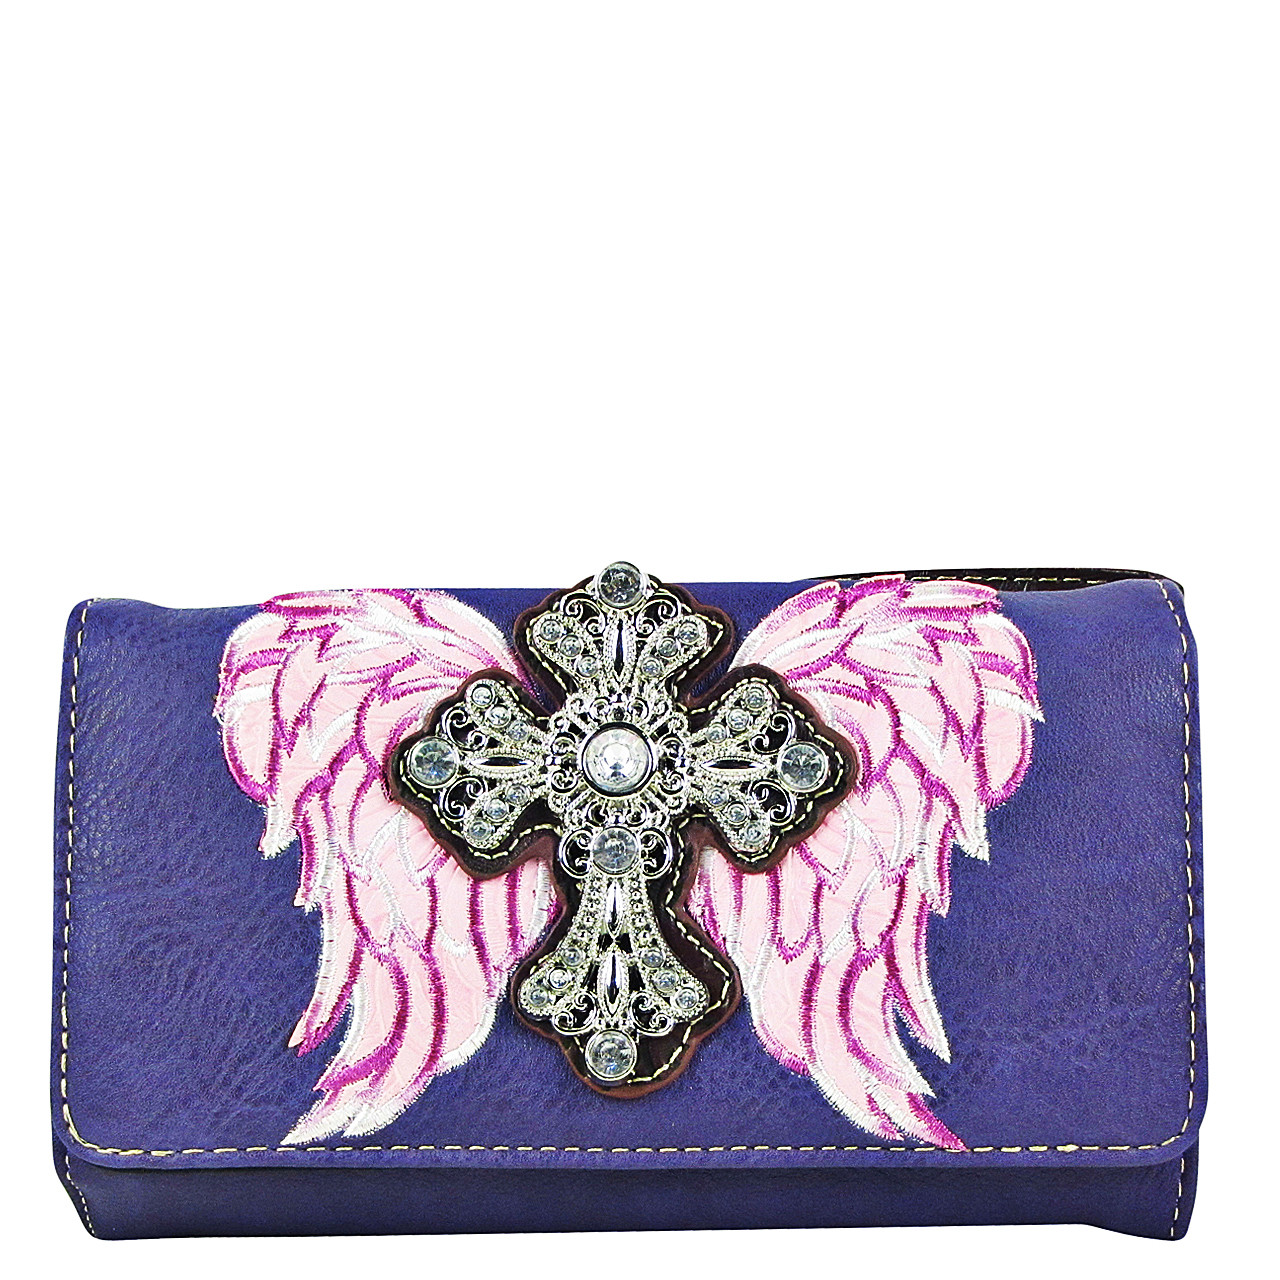 PURPLE WINGS WITH RHINESTONE CROSS LOOK CLUTCH TRIFOLD WALLET CW1-0477PPL